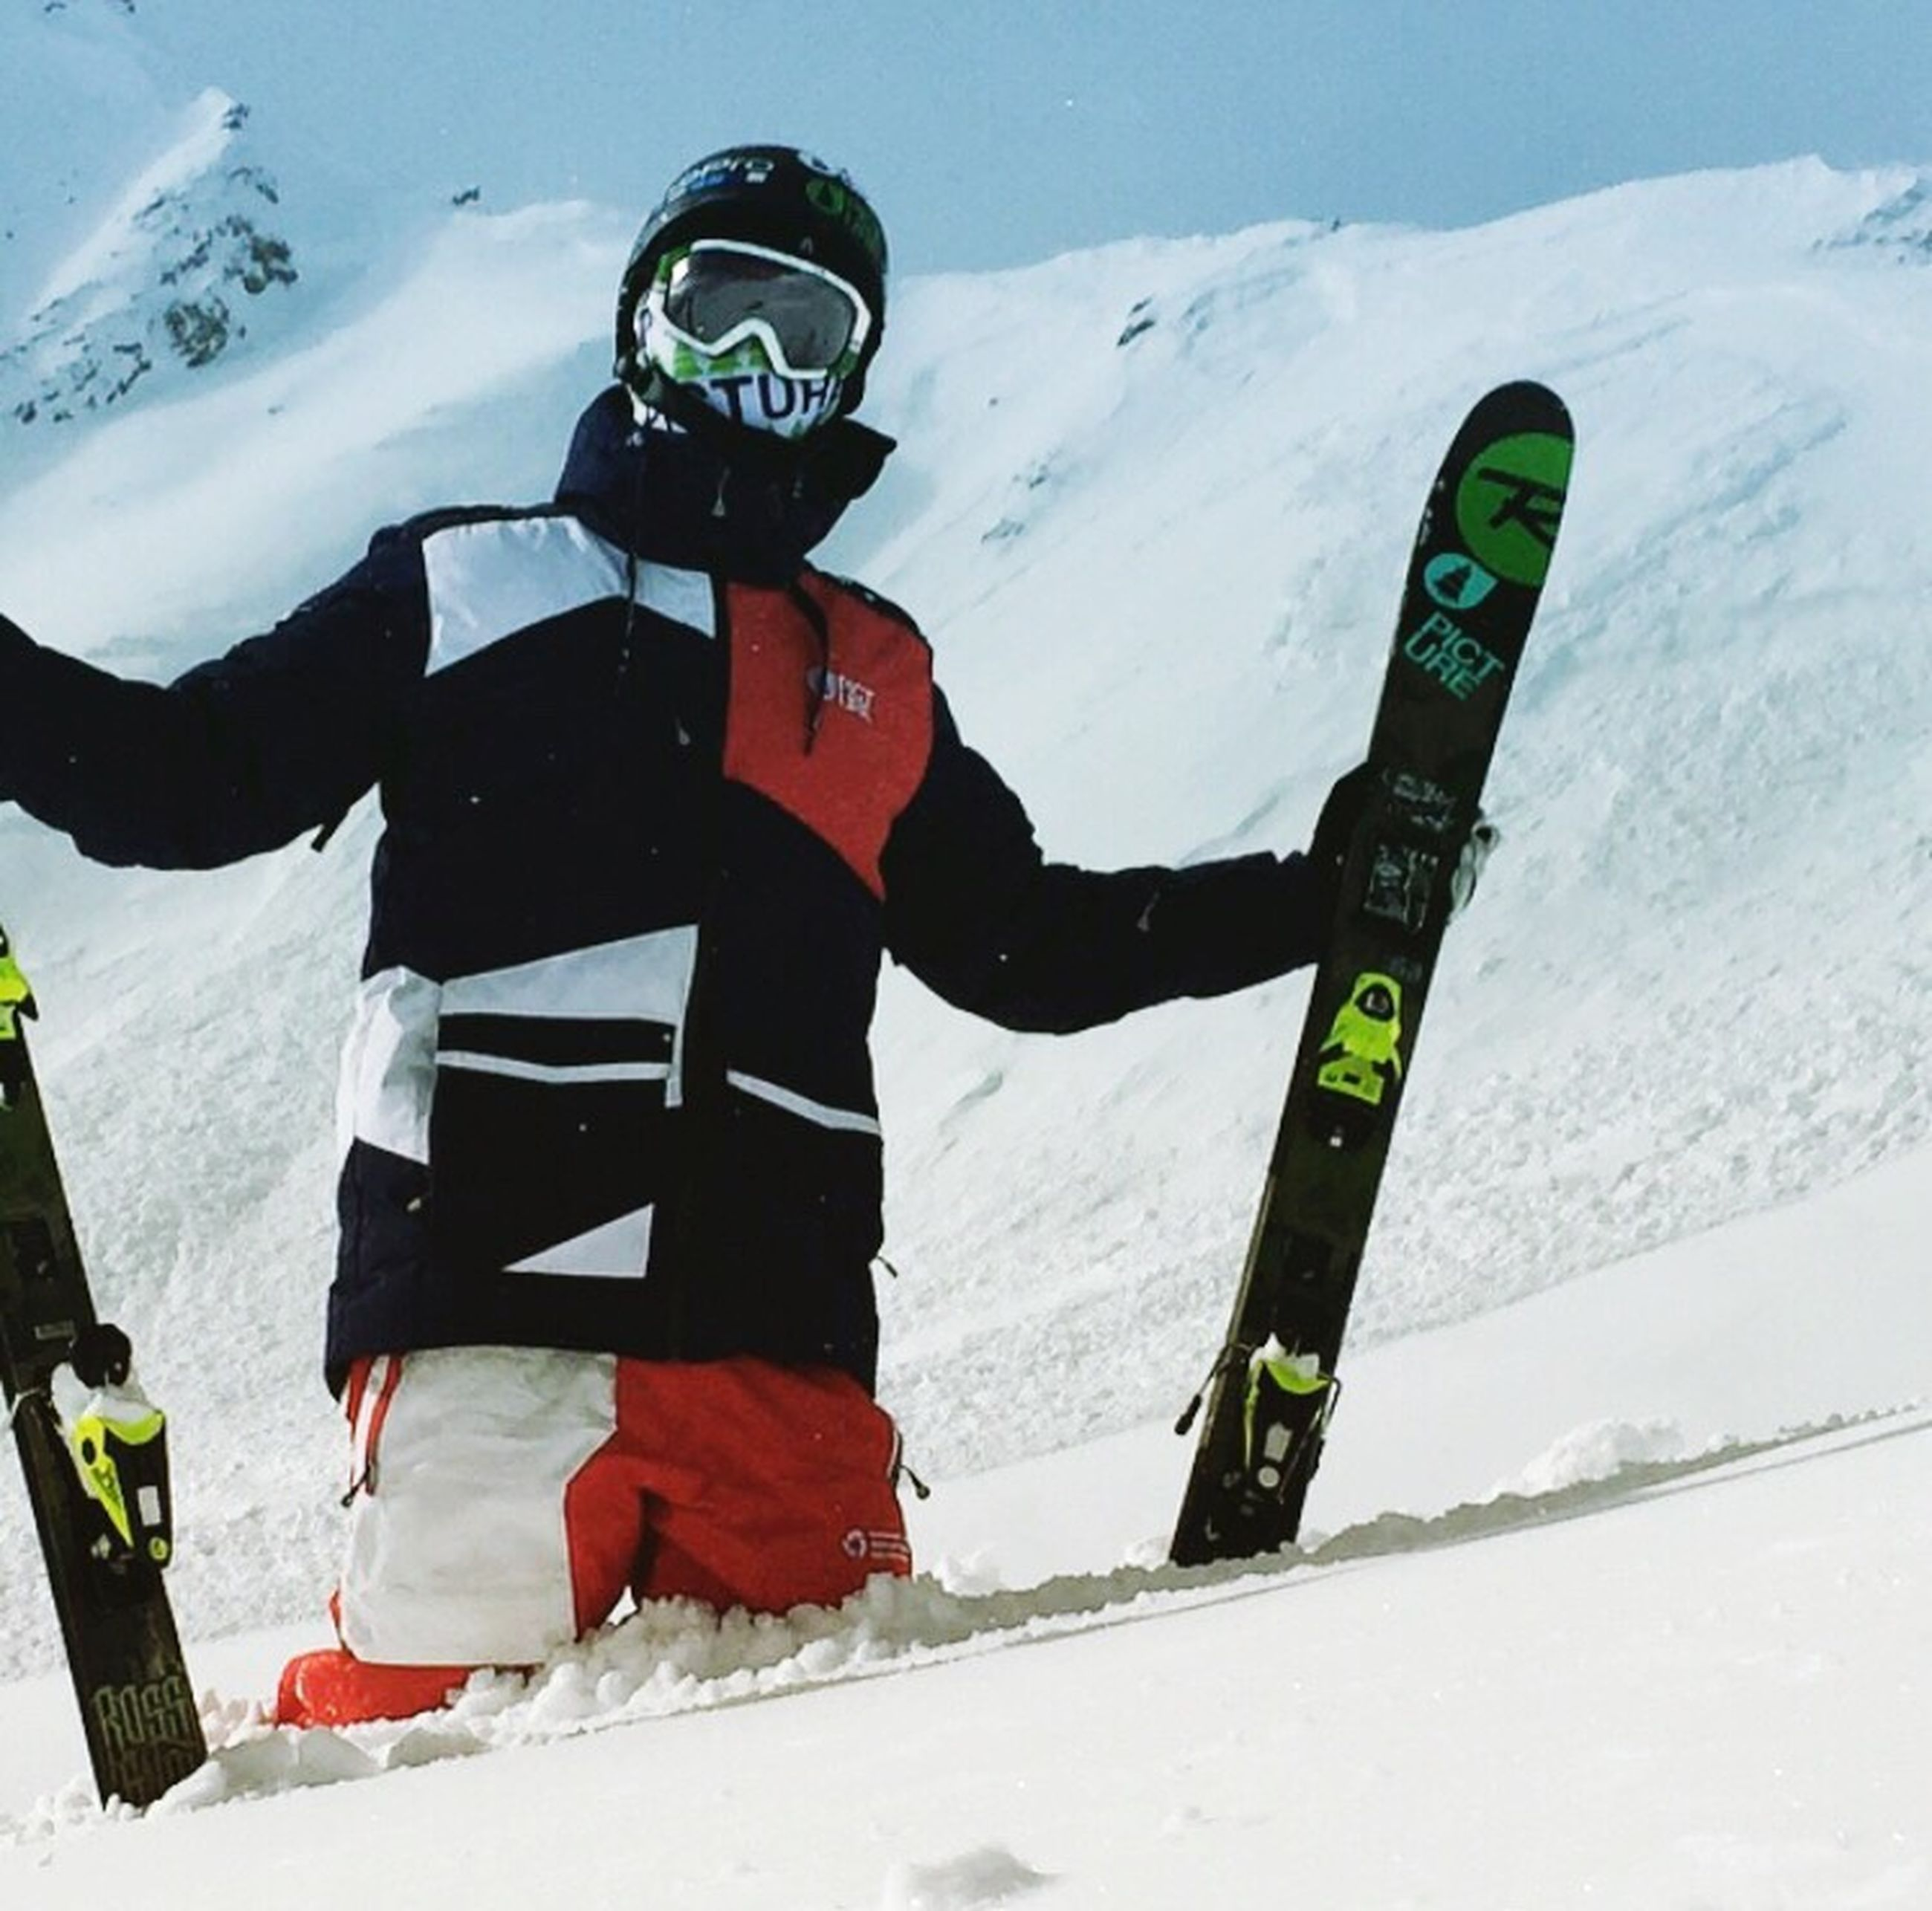 snow, winter, cold temperature, leisure activity, season, lifestyles, extreme sports, mountain, adventure, sport, weather, communication, high angle view, day, white color, text, transportation, unrecognizable person